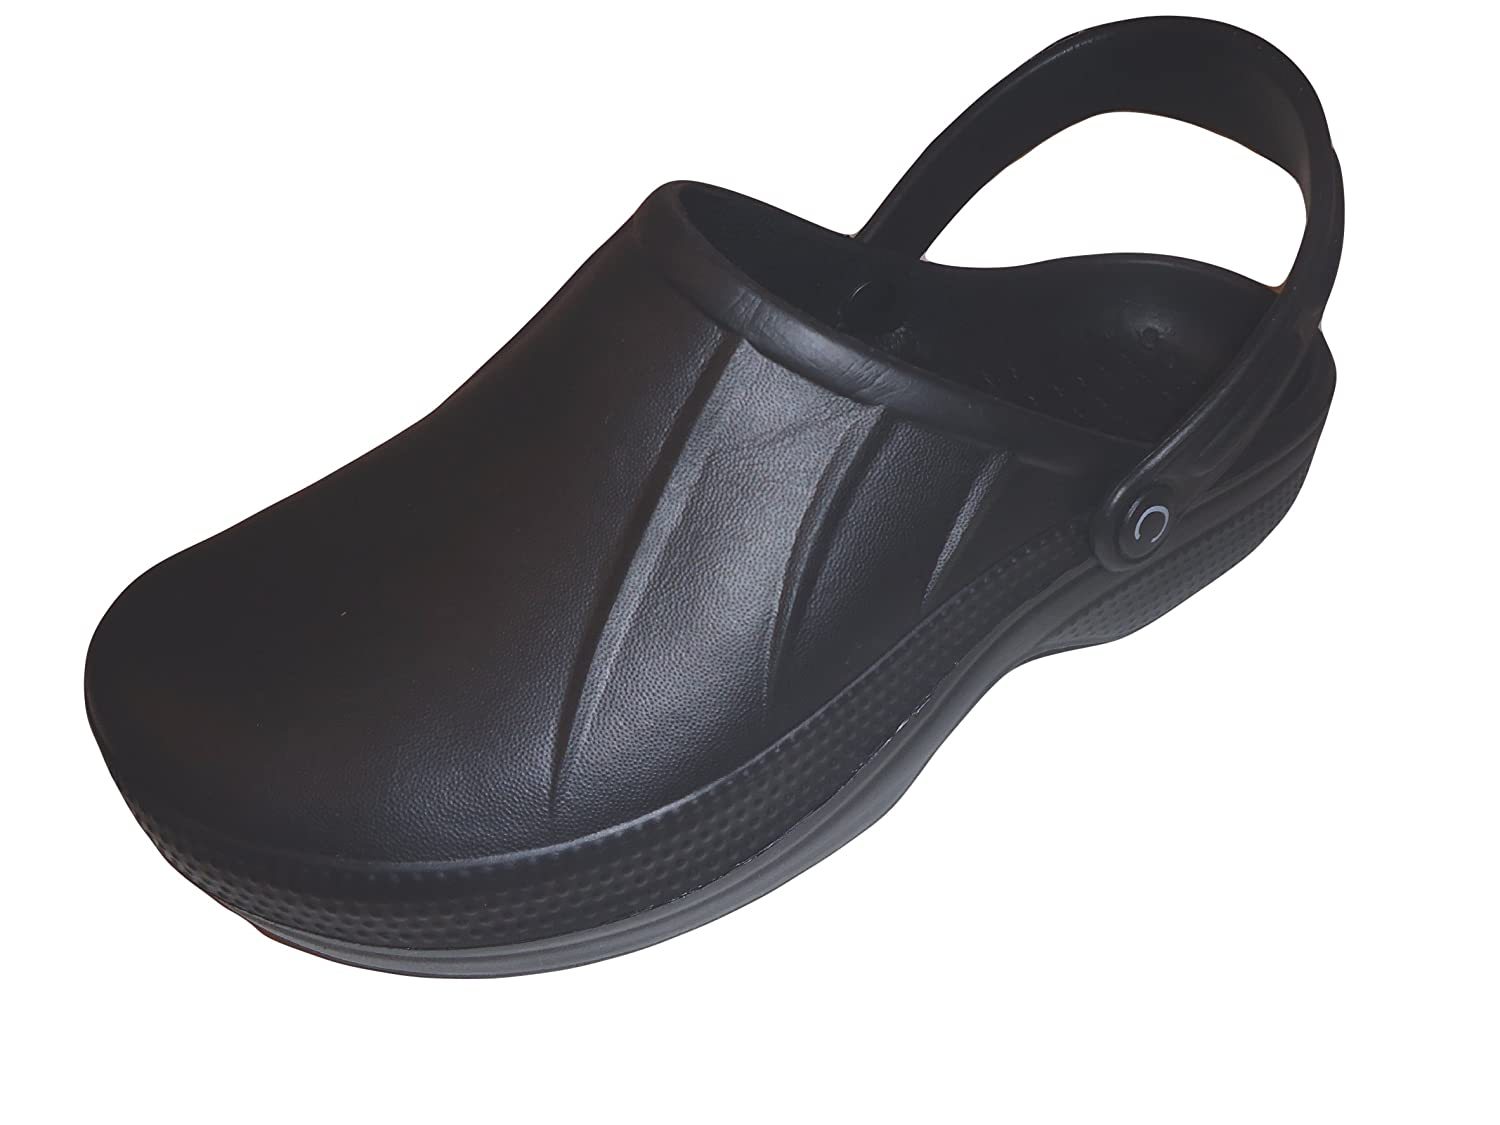 Full Clogs Dental Kitchen Chefs Nurse Safety Shoes Full Kitchen Mens Ladies  Slip On Cloggis: Amazon.co.uk: Shoes U0026 Bags